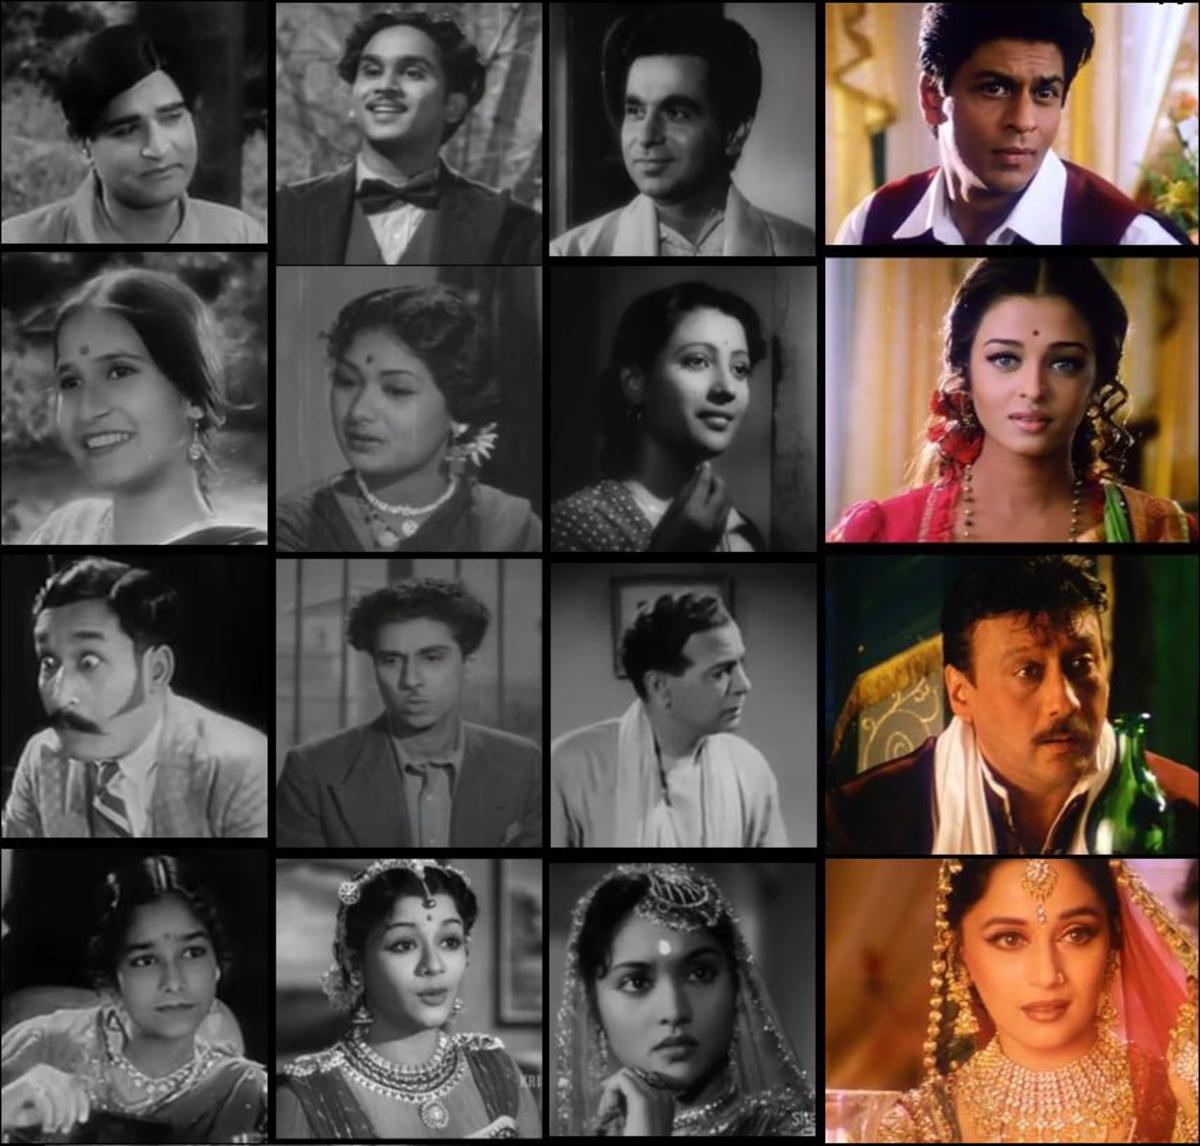 Devdas, Parvathi, Chunnilal / Bhagawan and Chandramukhi from 1936, 1953, 1955 and 2002